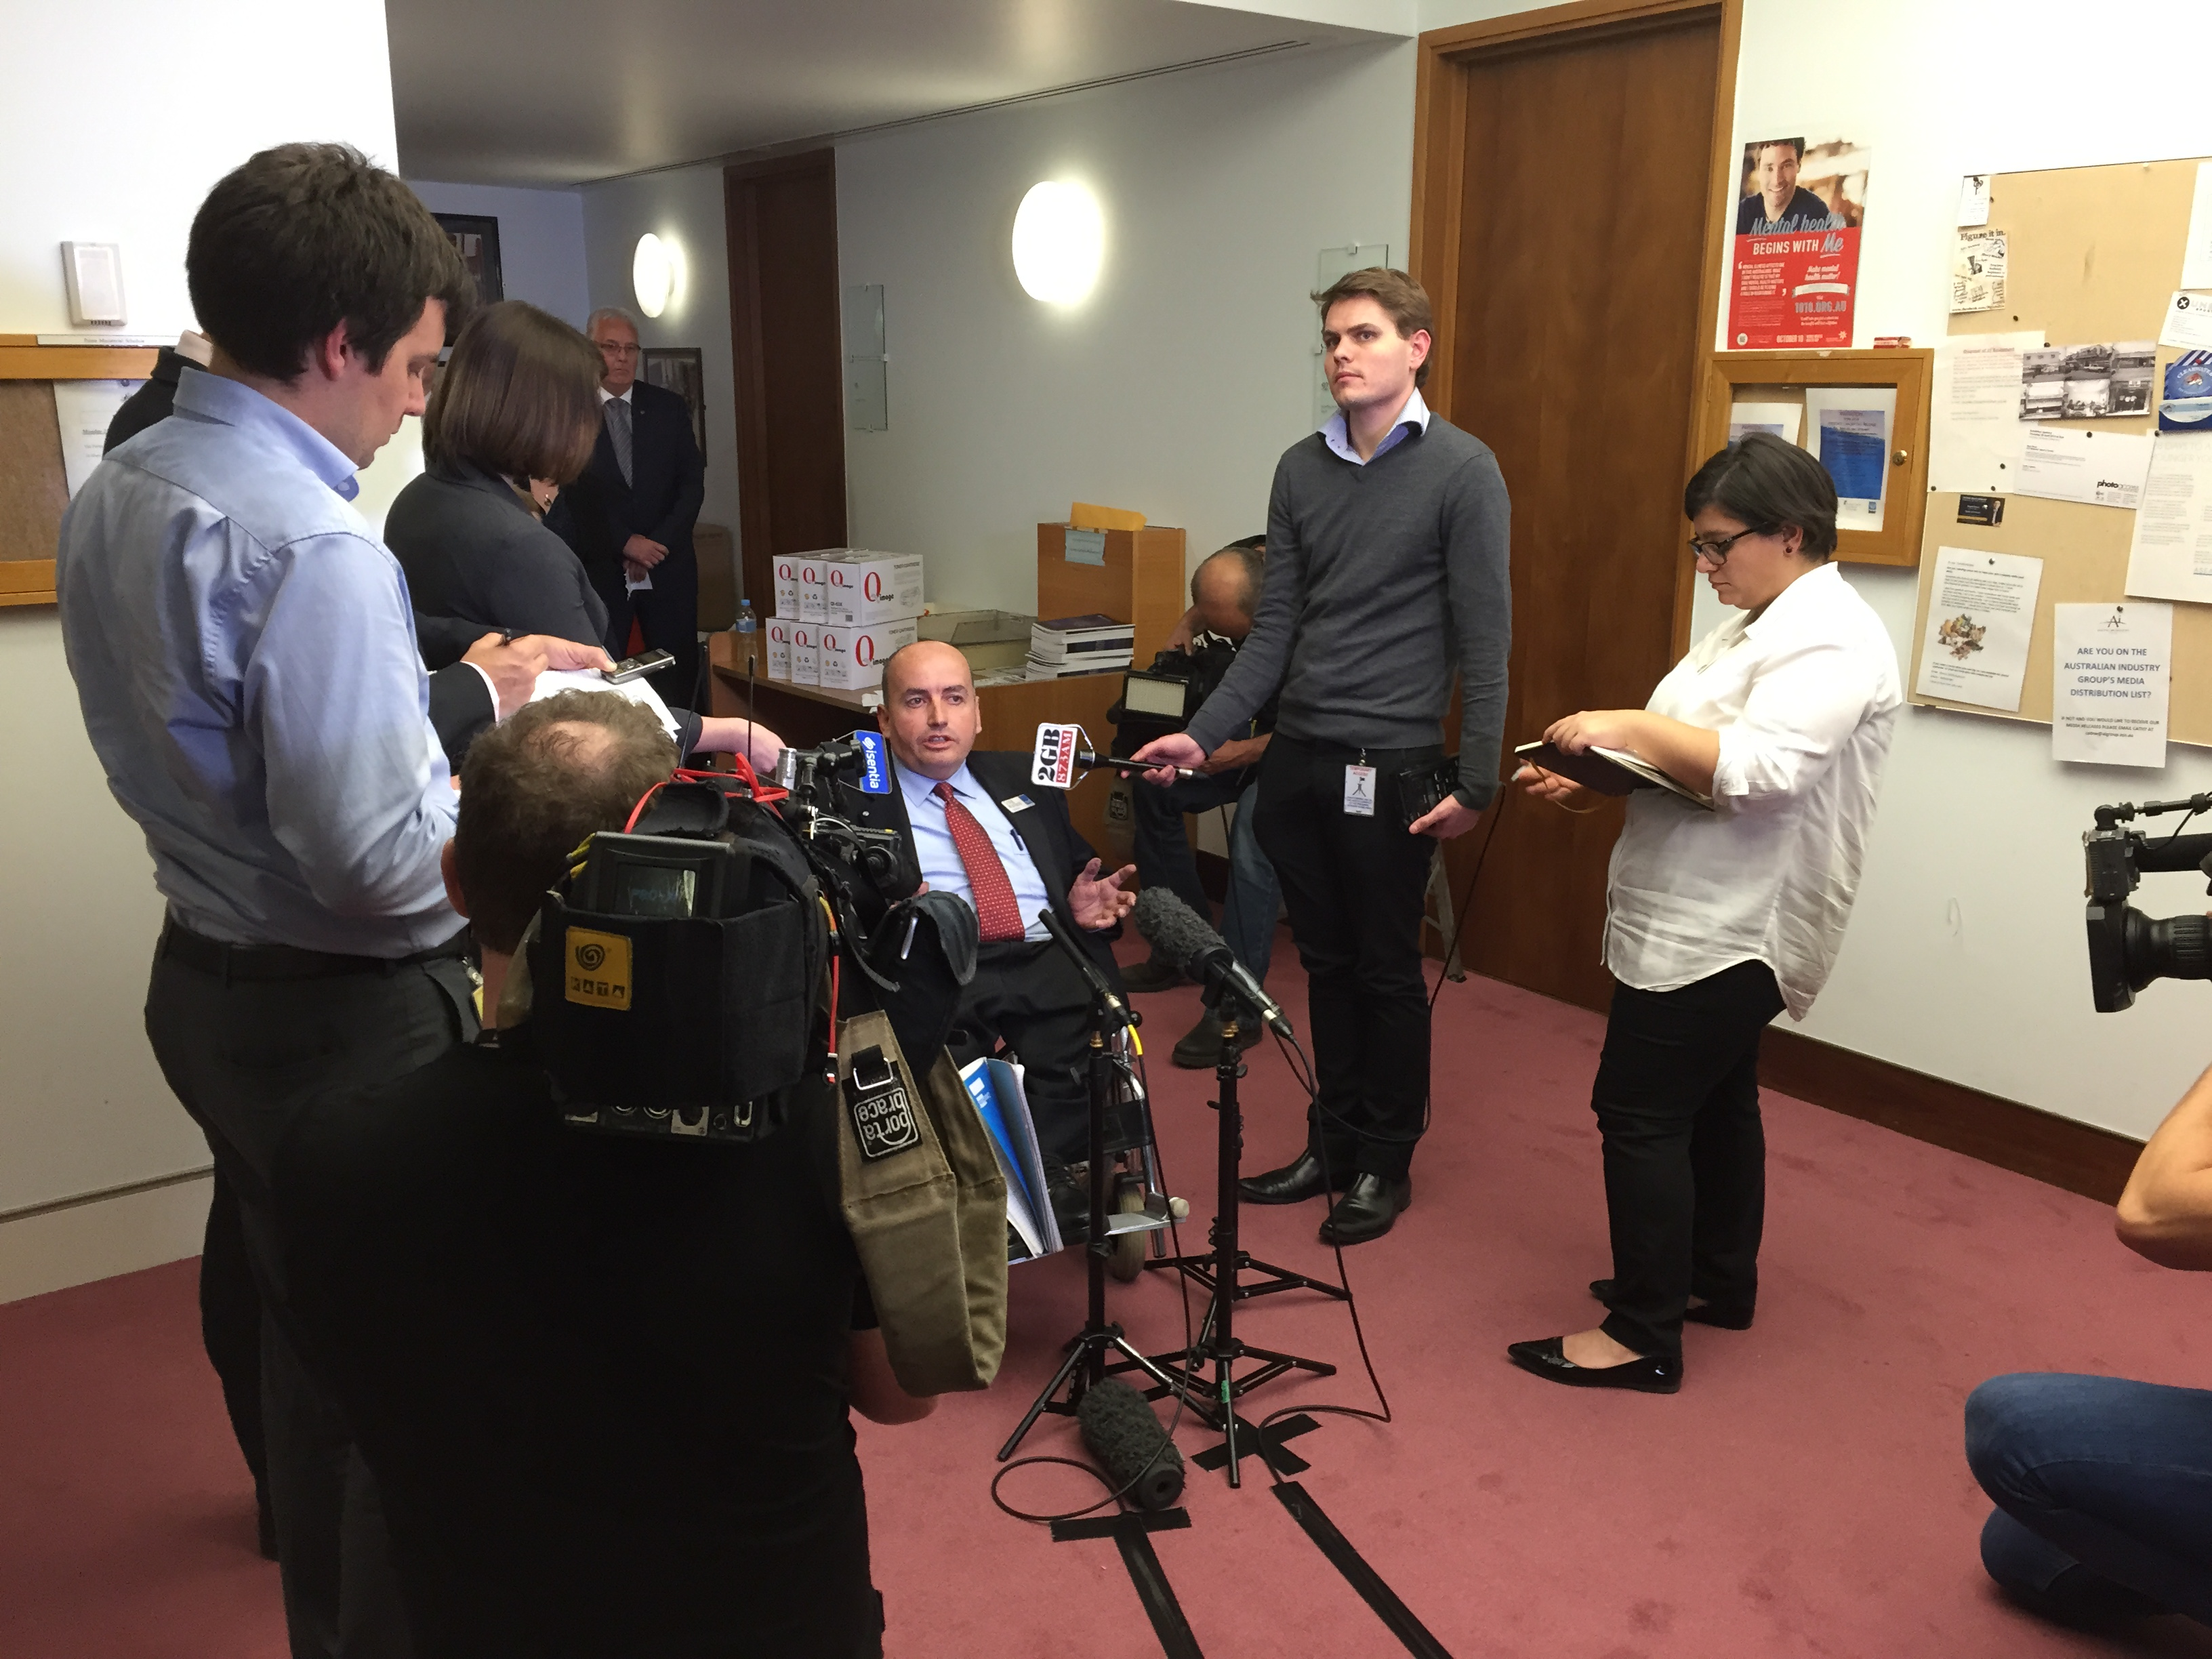 IMAGE: People with Disability Australia President Craig Wallace answering questions from TV, newspaper and radio journalists about the 2015 Federal Budget